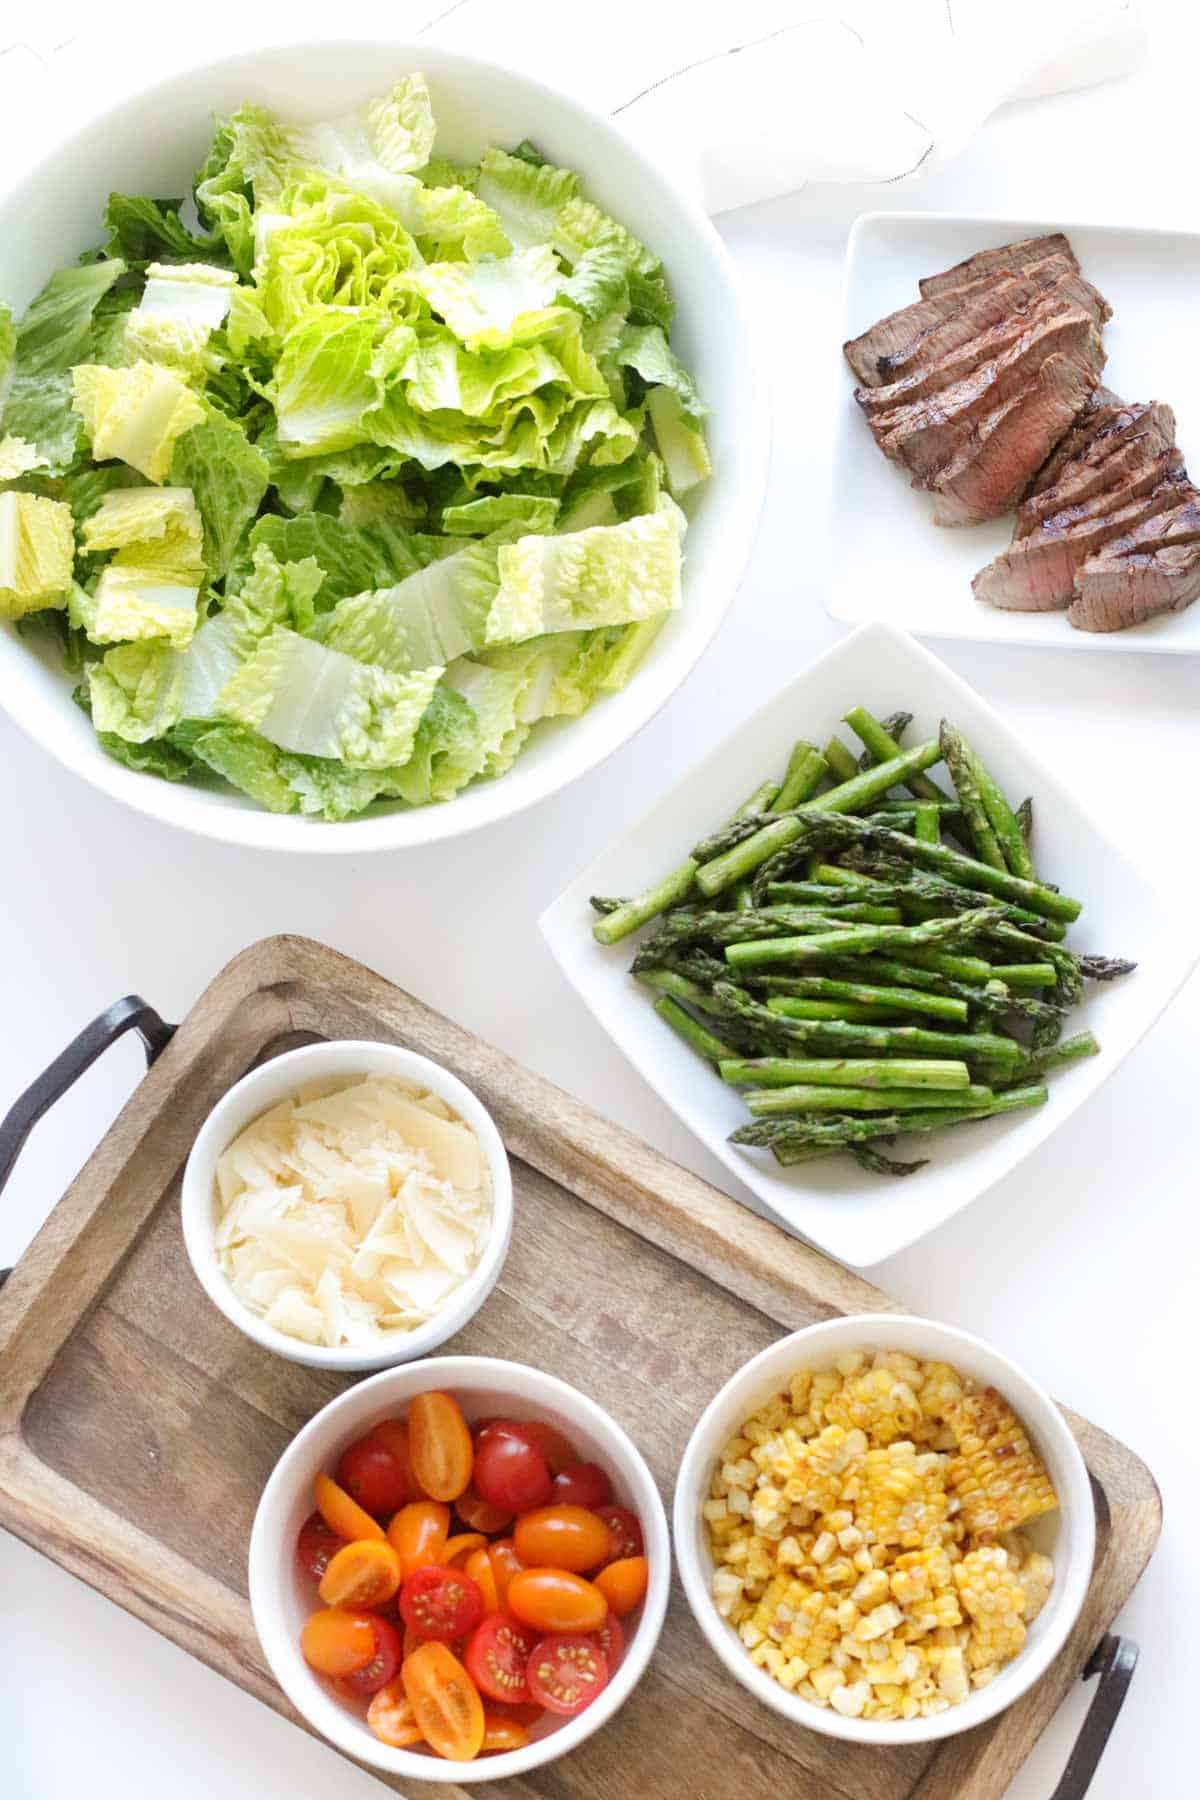 all of the different prepared salad components in bowls and on plates on a white table